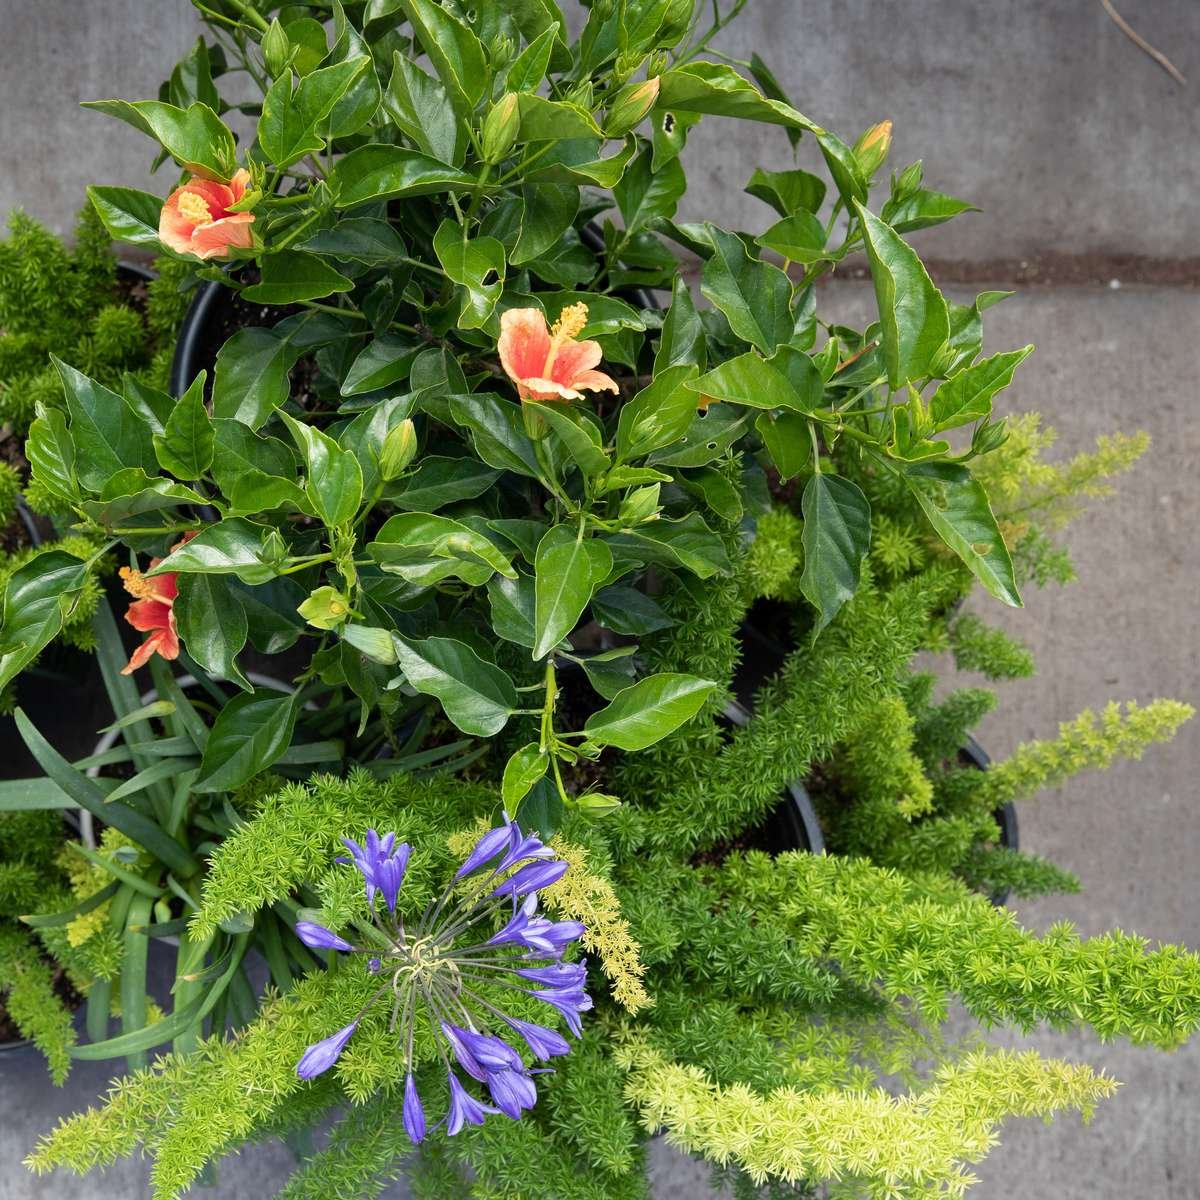 photo: Hibiscus, Asparagus Fern, Lily of the Nile